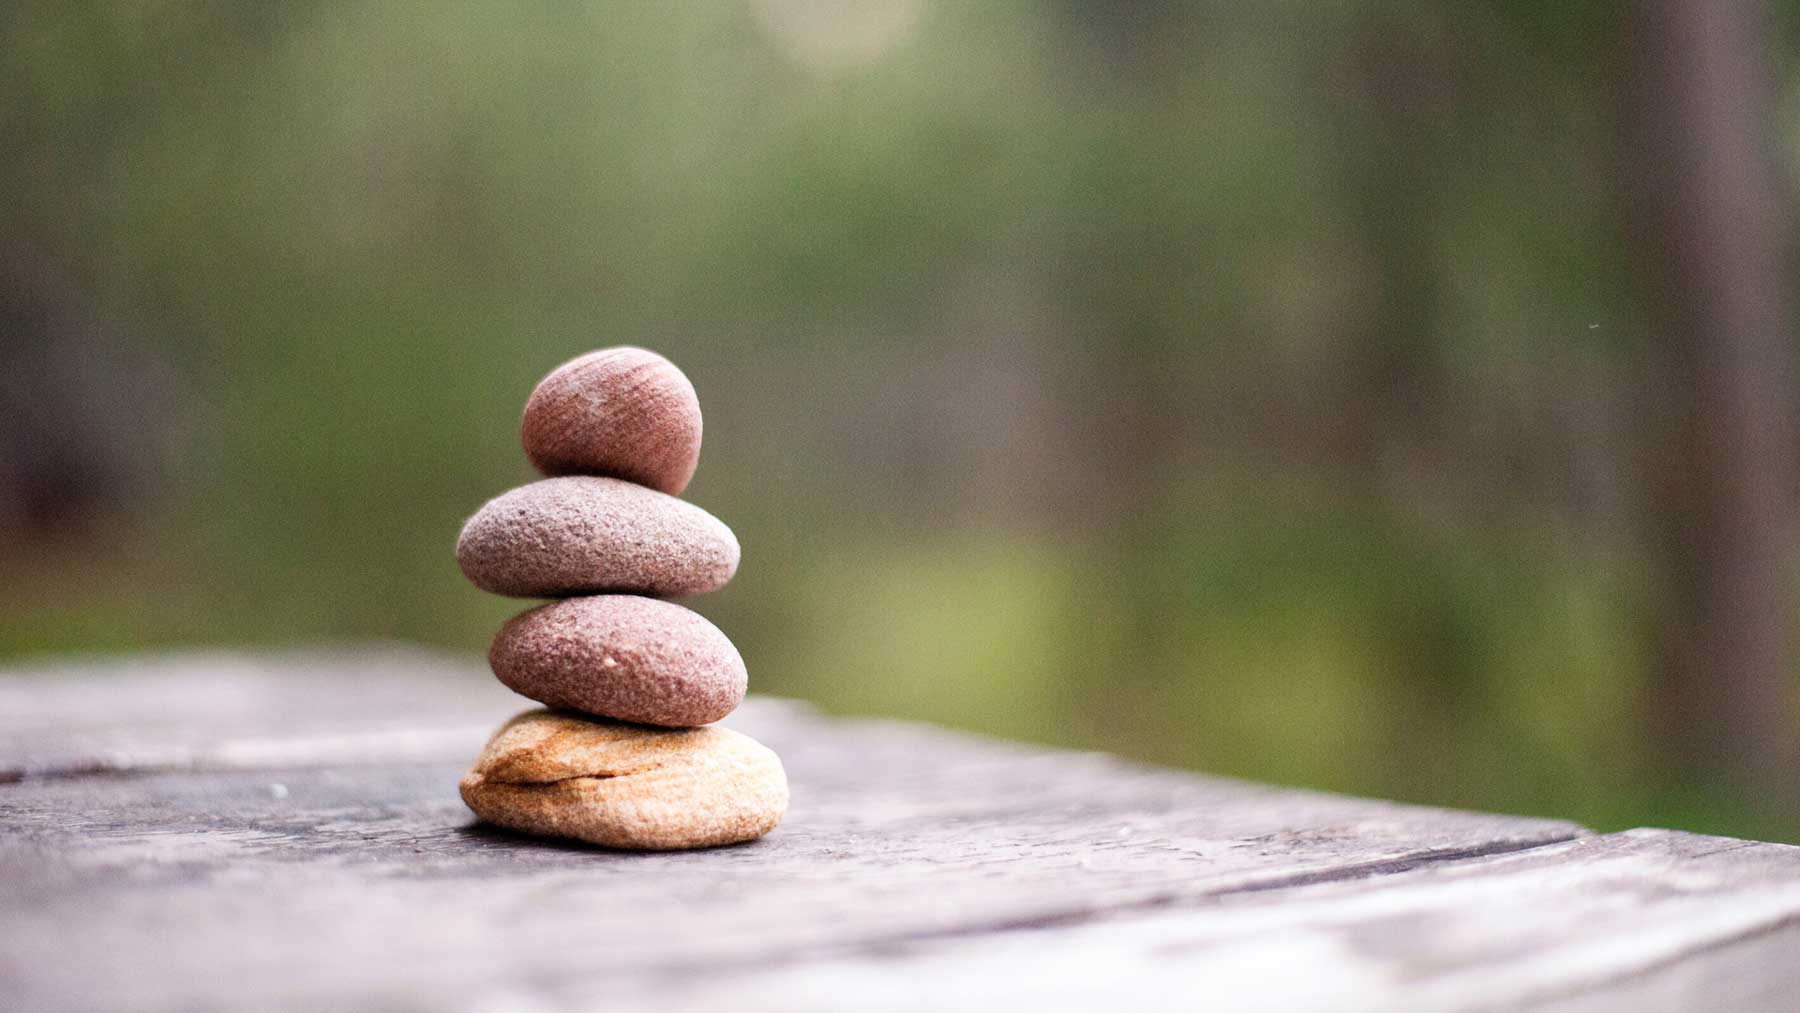 pile of smooth stones balancing on top of each other to represent a balanced approach